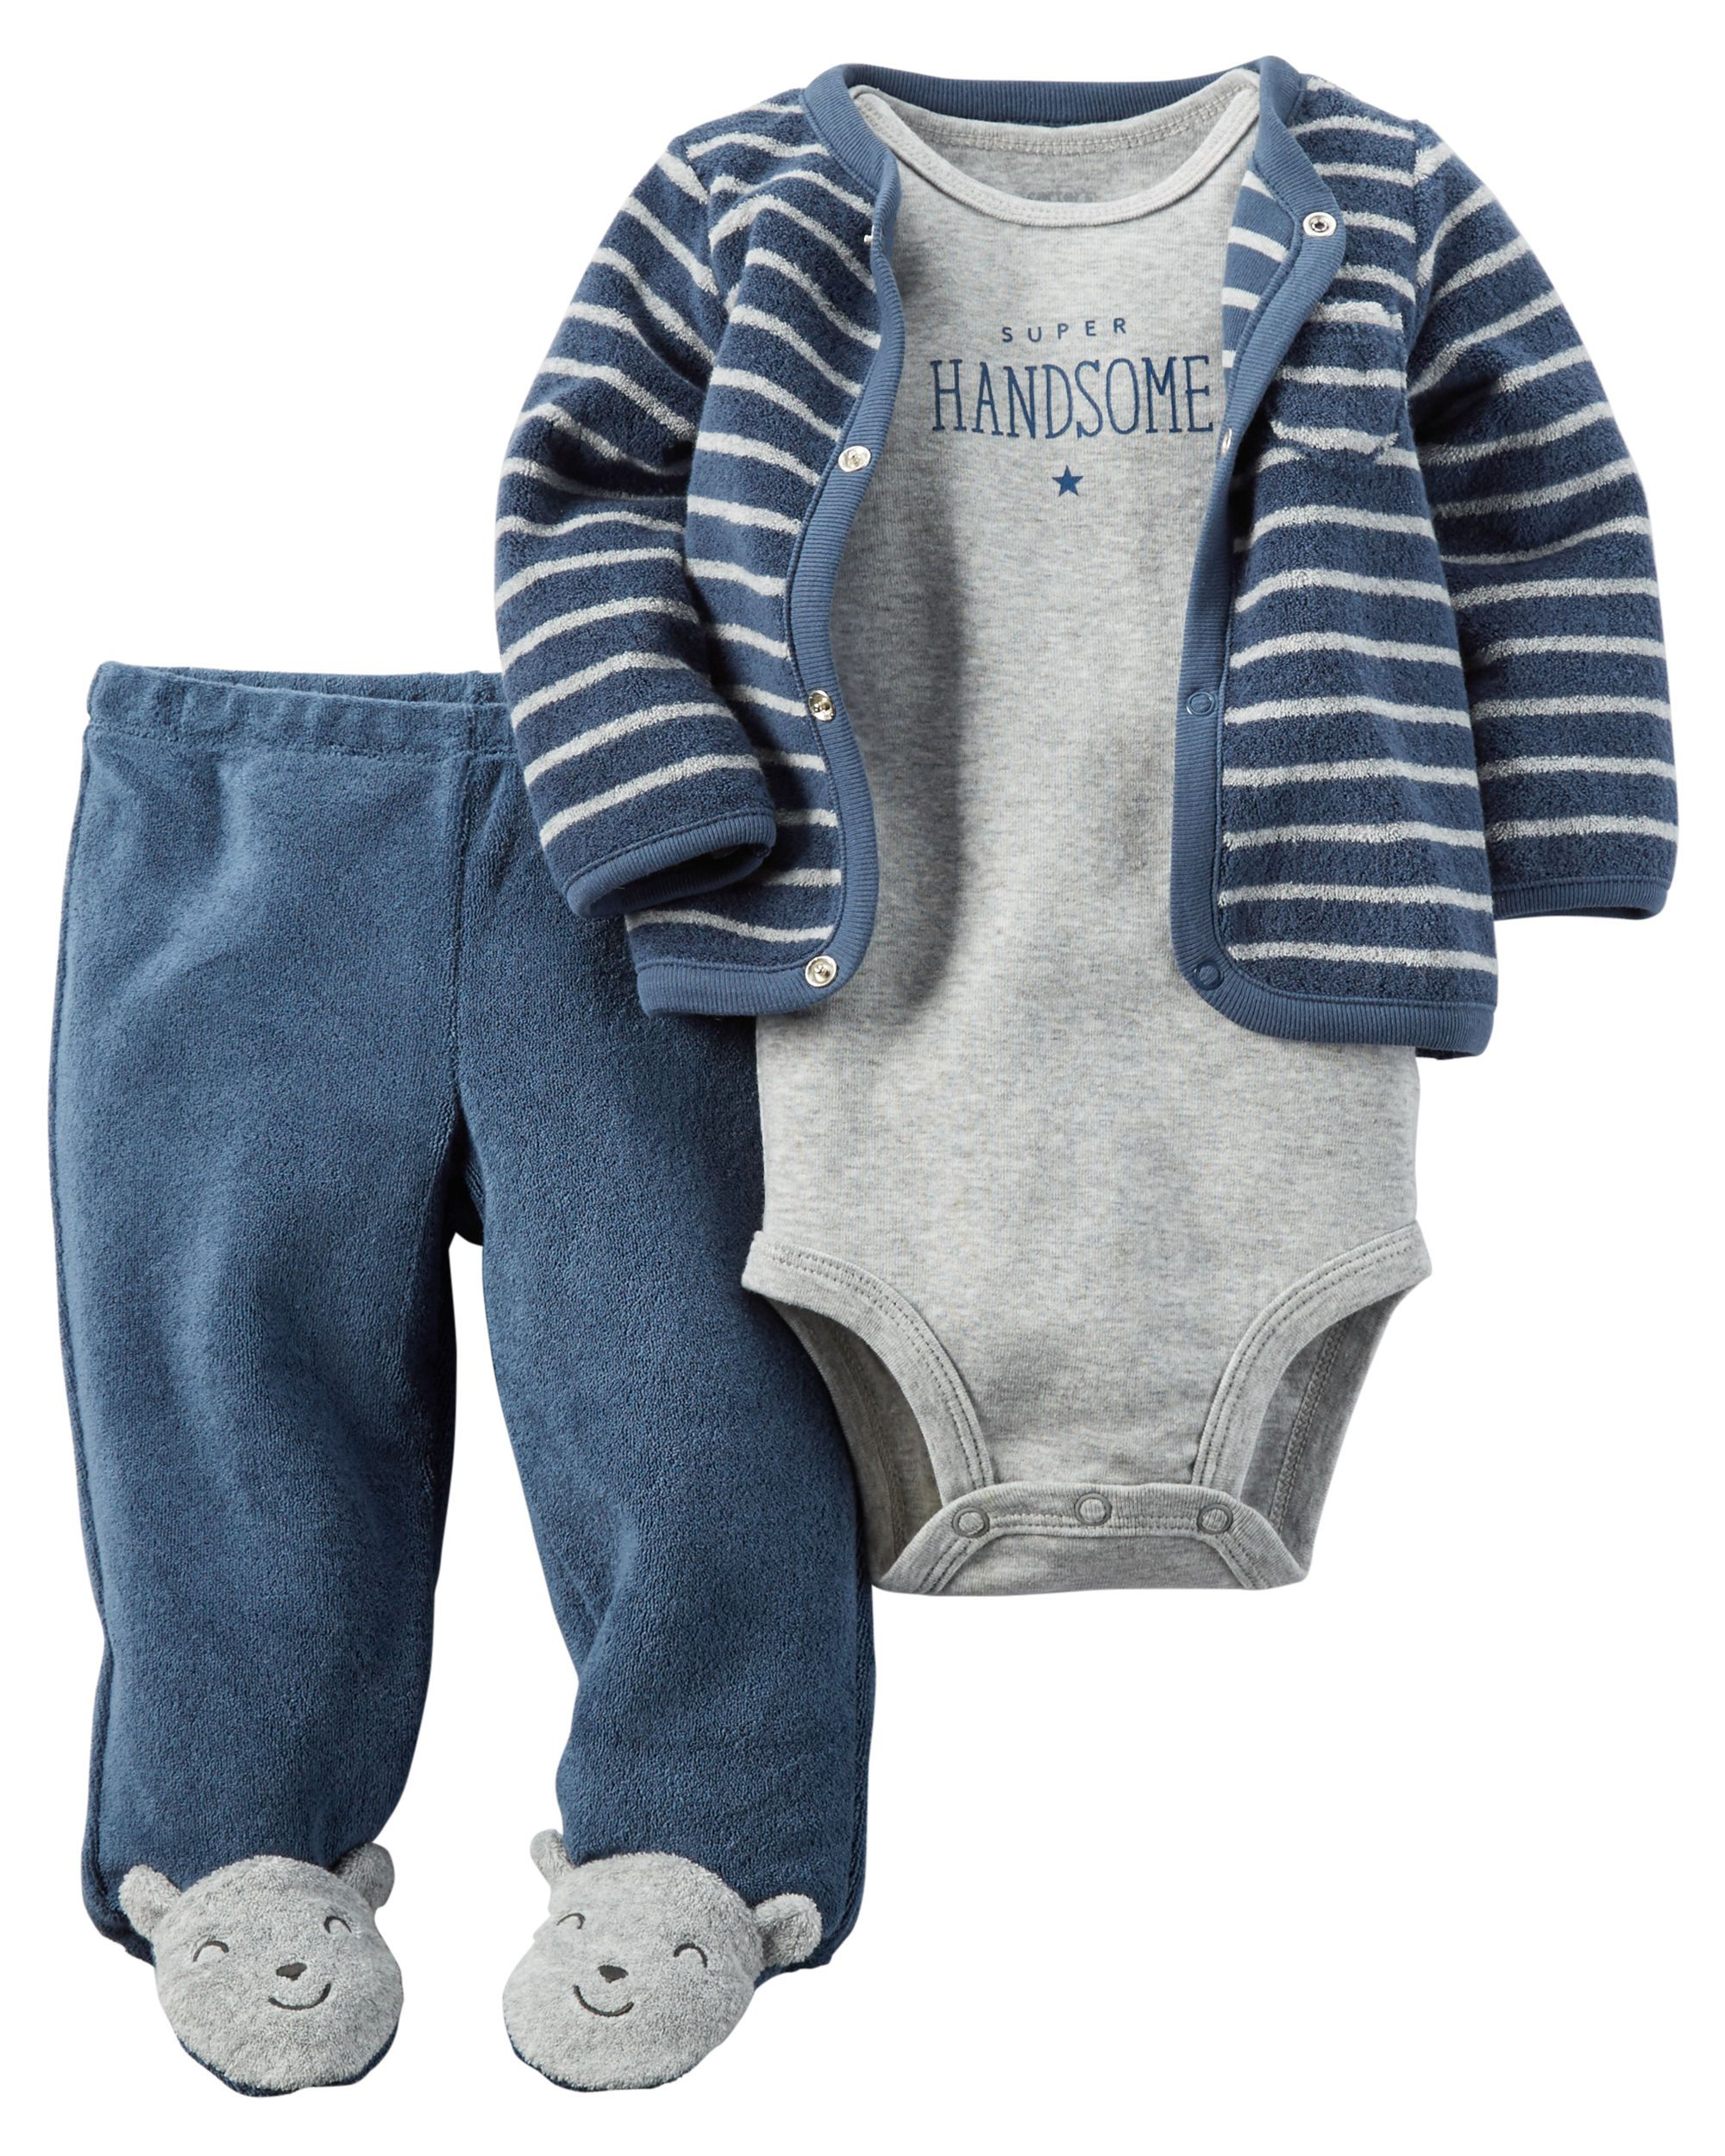 Featuring a short-sleeve bodysuit and cardi to layer, this babysoft cotton set makes a perfect little outfit with essential footed pants. Easy as 1, 2, 3!